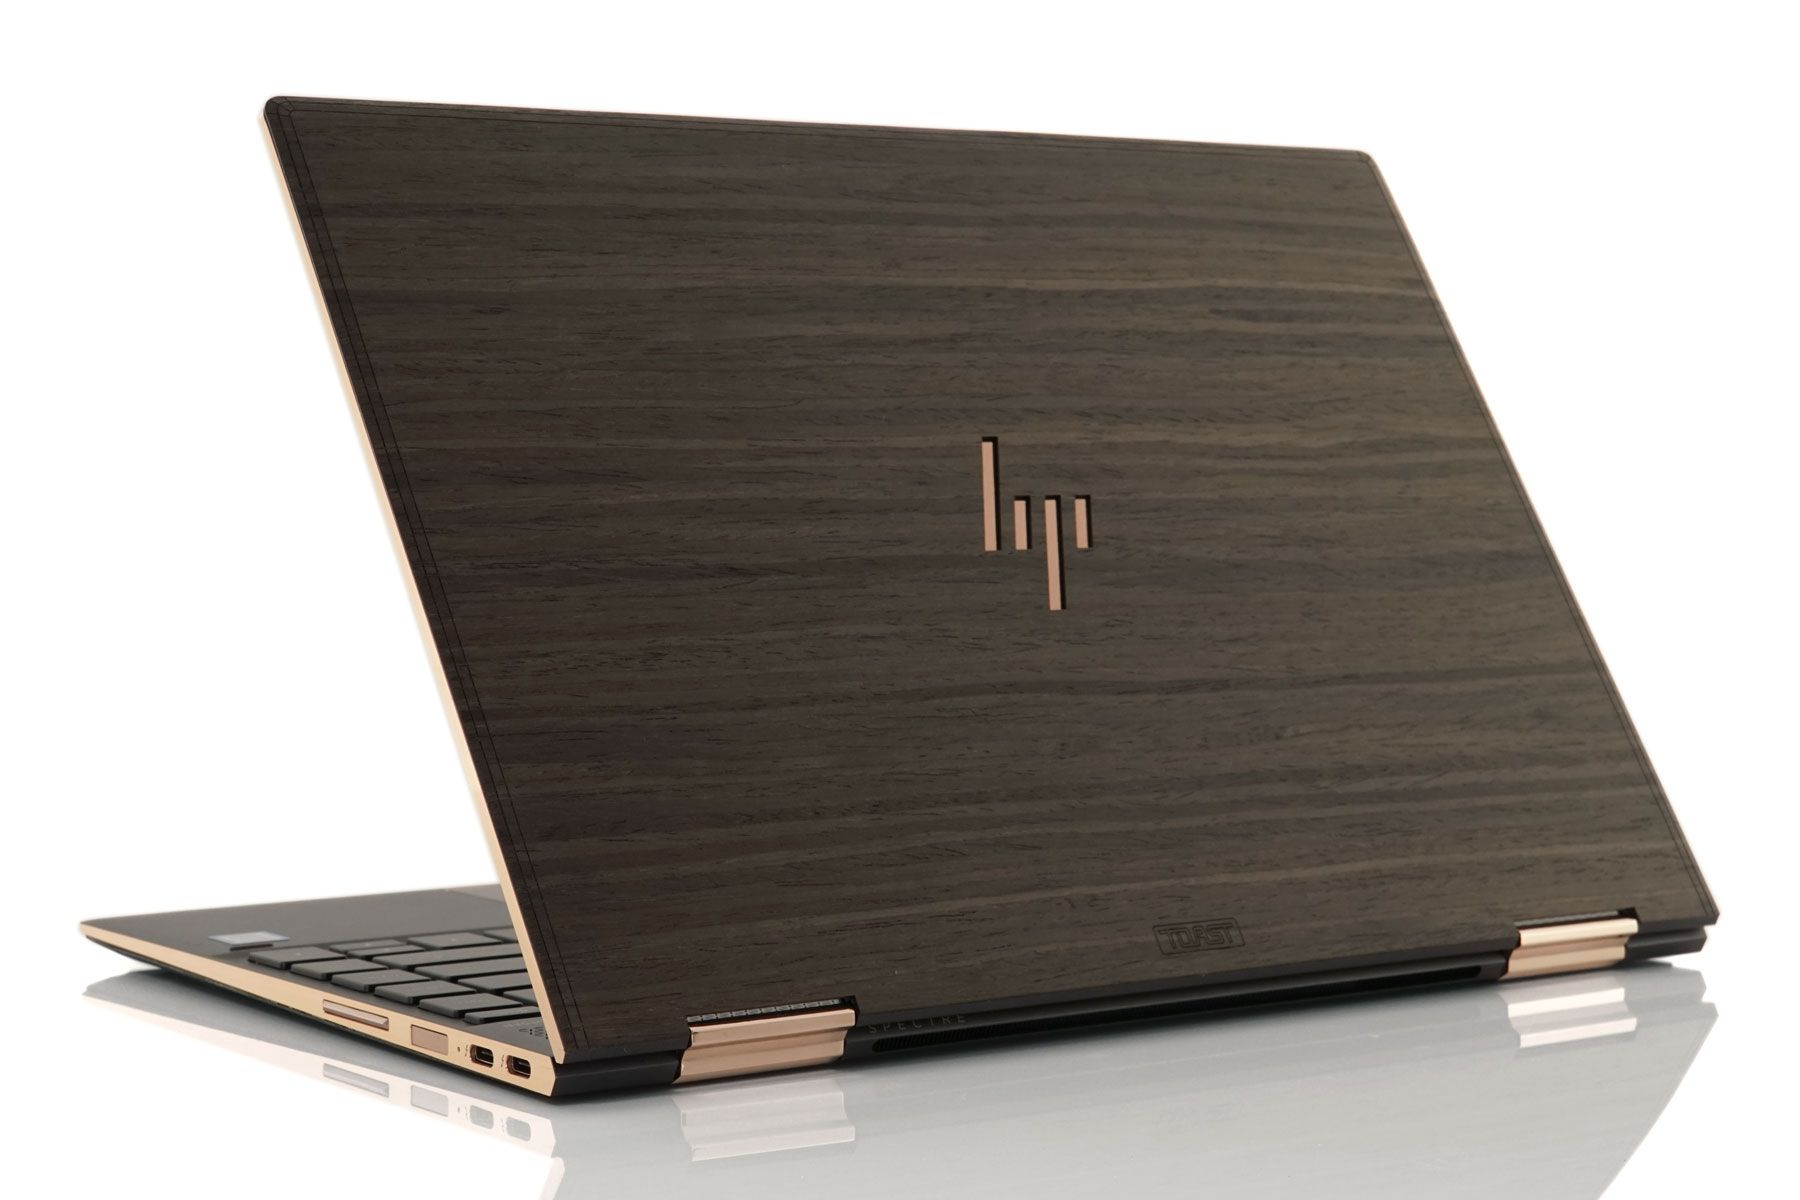 Toast real wood covers are now available for the 2018 hp spectre x360 add a naturally sleek look to your laptop each cover is laser cut from a piece of